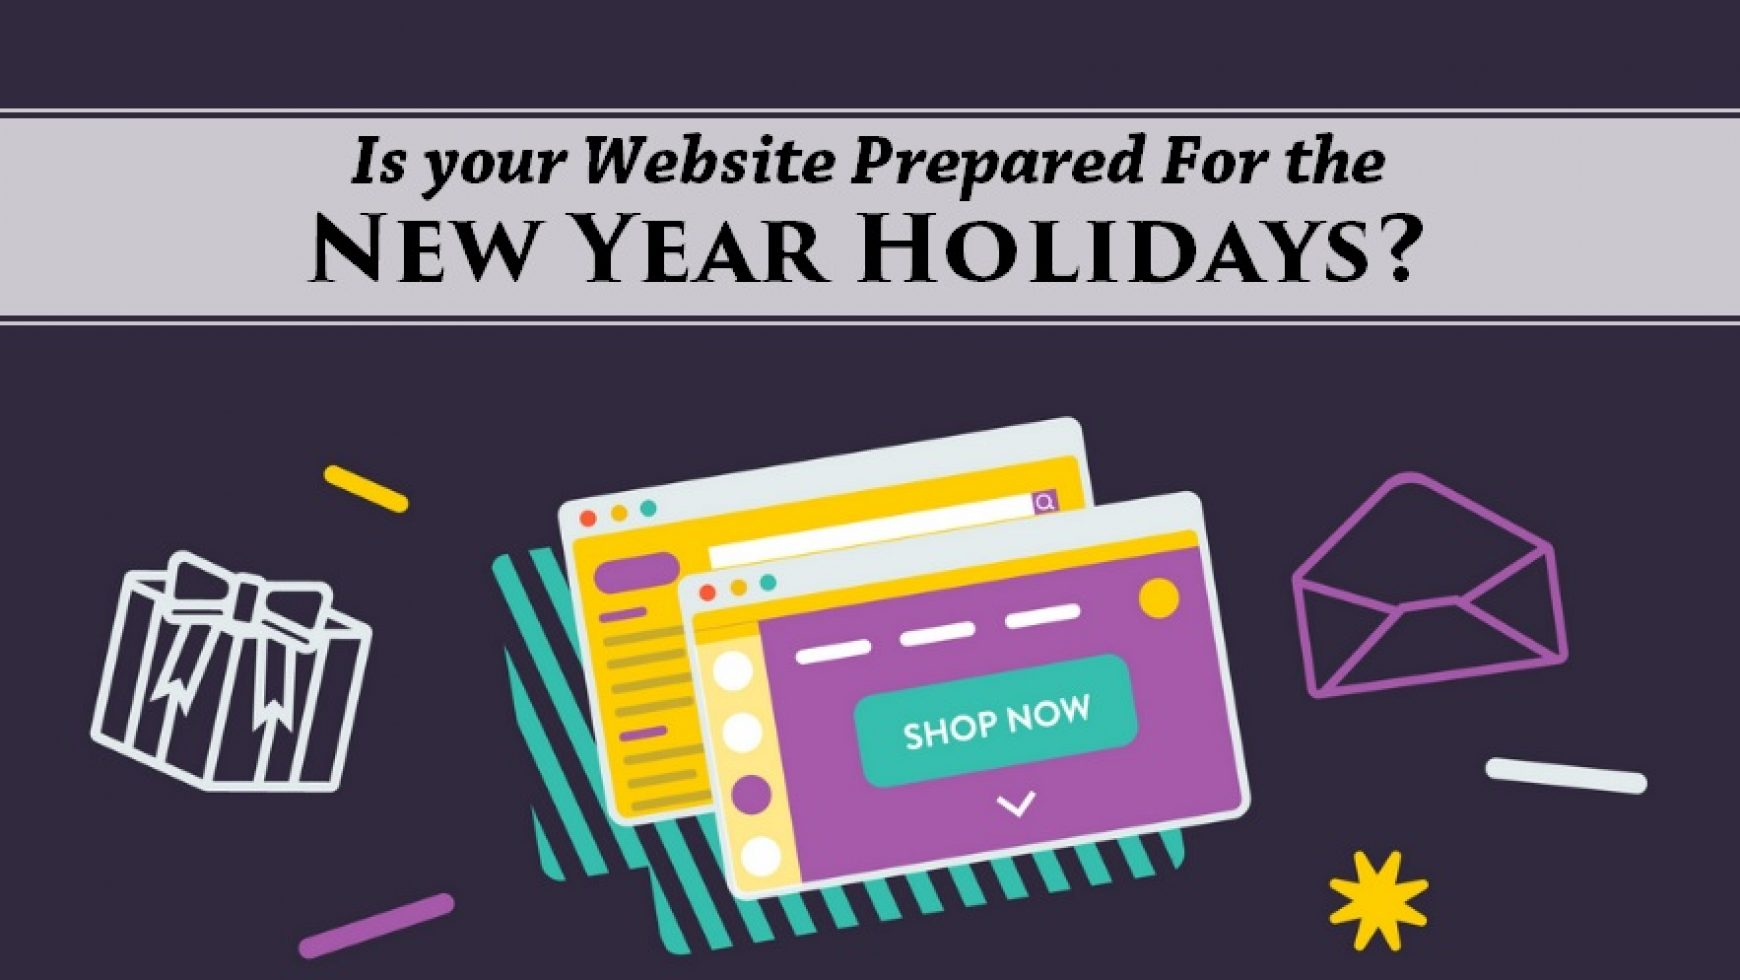 Is Your Website Prepared For The New Year Holidays?